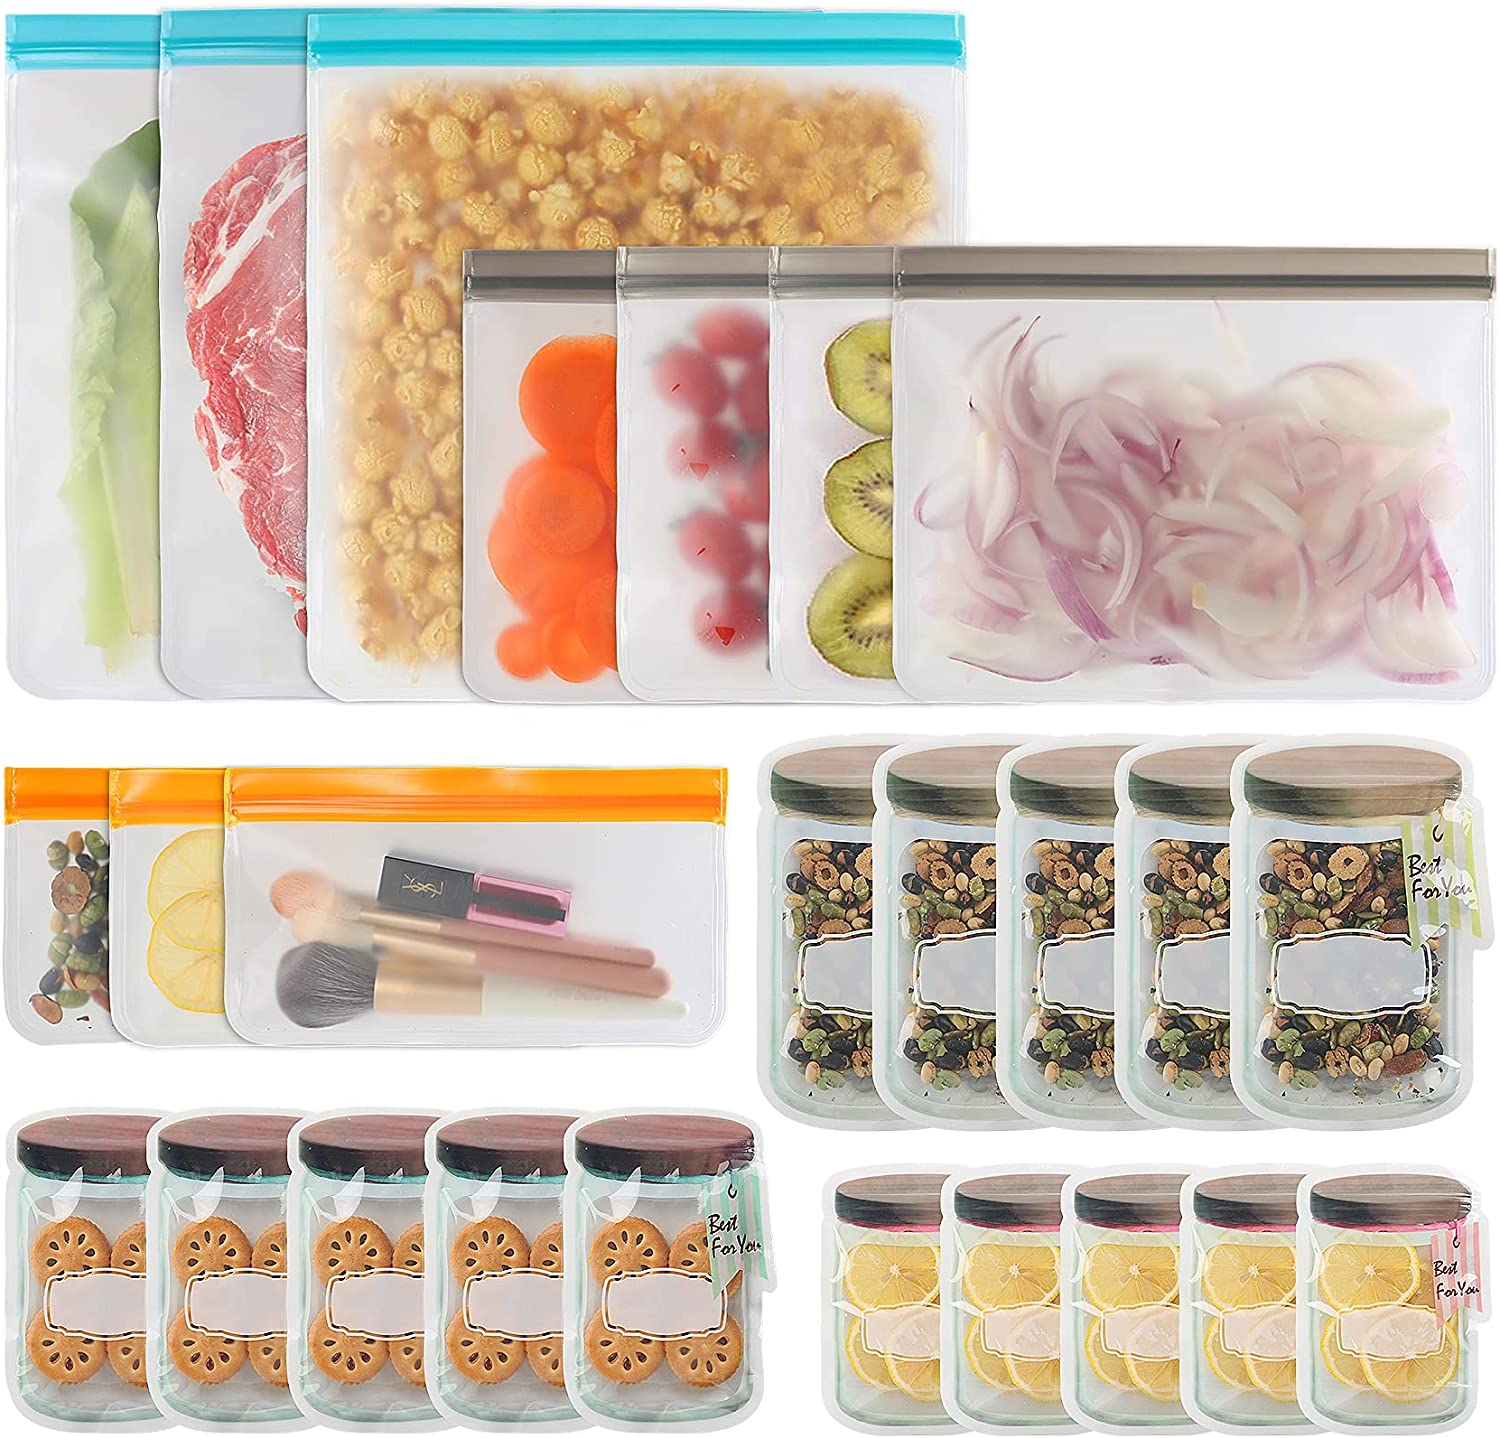 25 Pcs Reusable Food Storage Bags,10 Pcs Silicone Leakproof Reusable Freezer Bags (Additional 15 Reusable Mason Jar Bags),Thick PEVA Food Bags BPA Free Zipper Bags for Sandwich Meat Fruit Cereal Snack